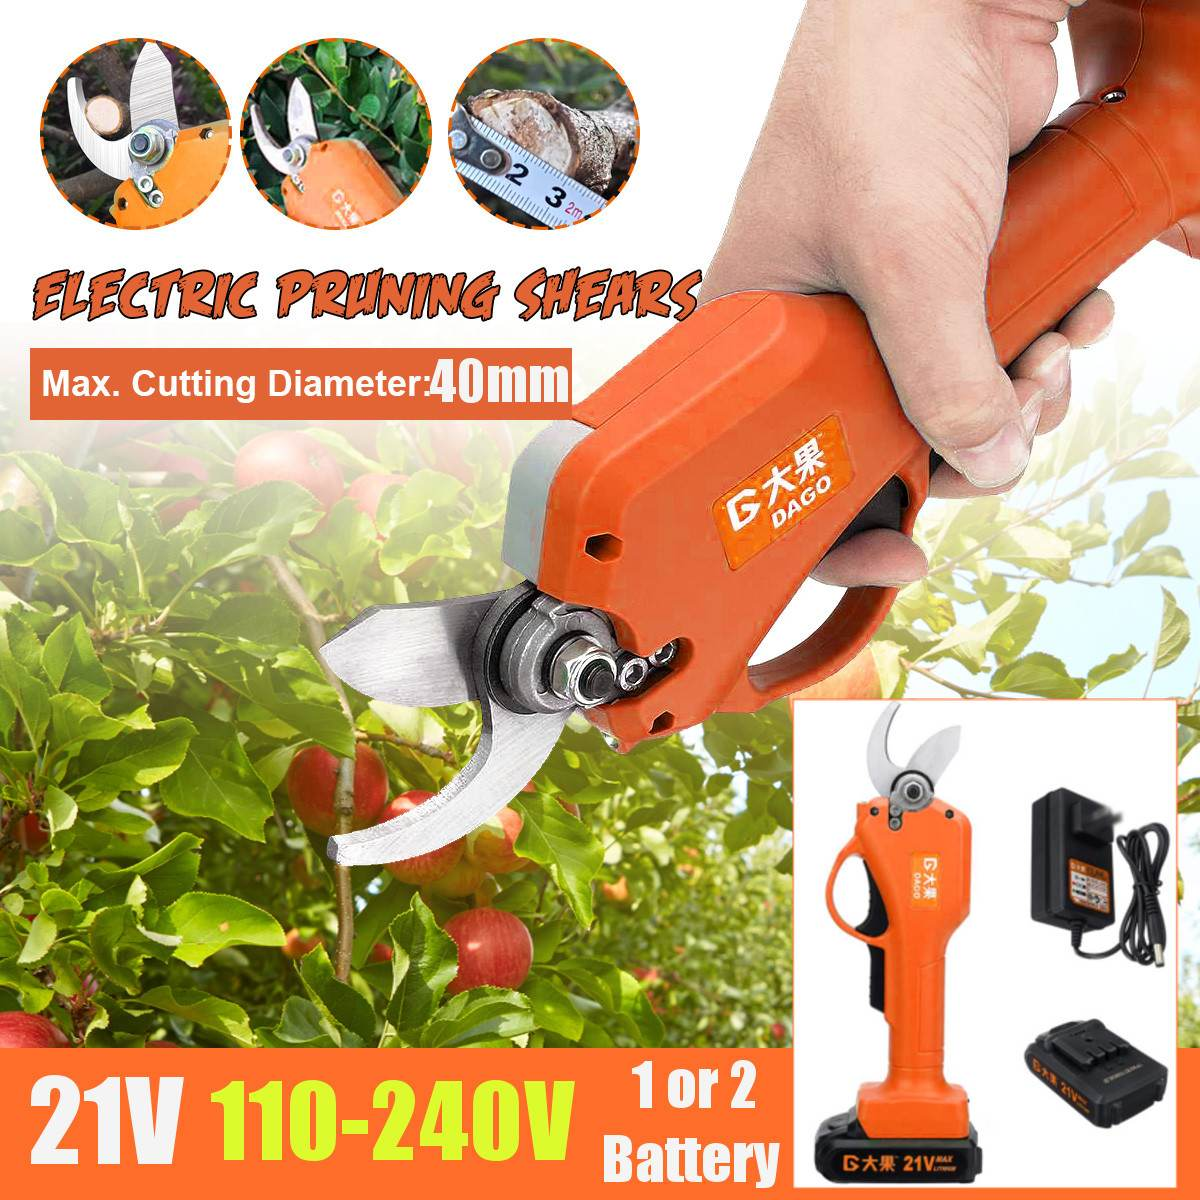 21V 40mm Electric Pruning Shears Cordless Secateur Rechargeable Pruning Scissors Pruners Garden Cutting Tools With 1  2 Battery